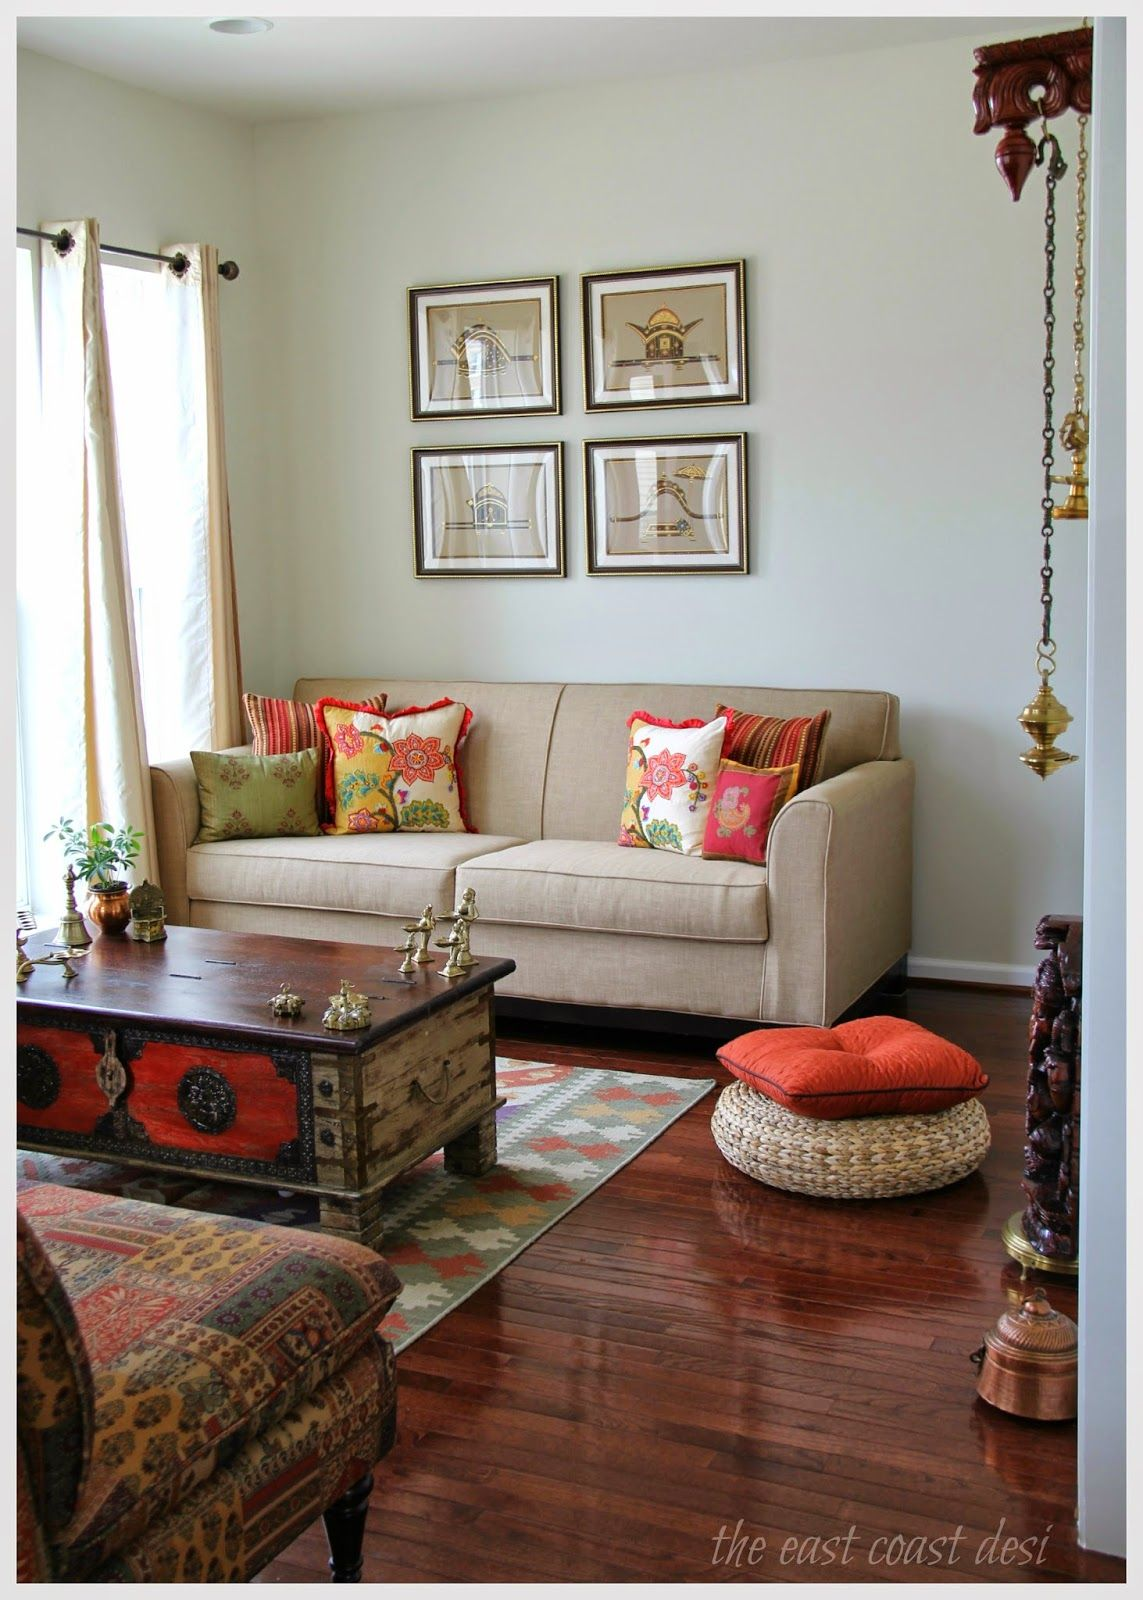 Indian style living room also curated home vs decorated totally decoracion hogar rh co pinterest